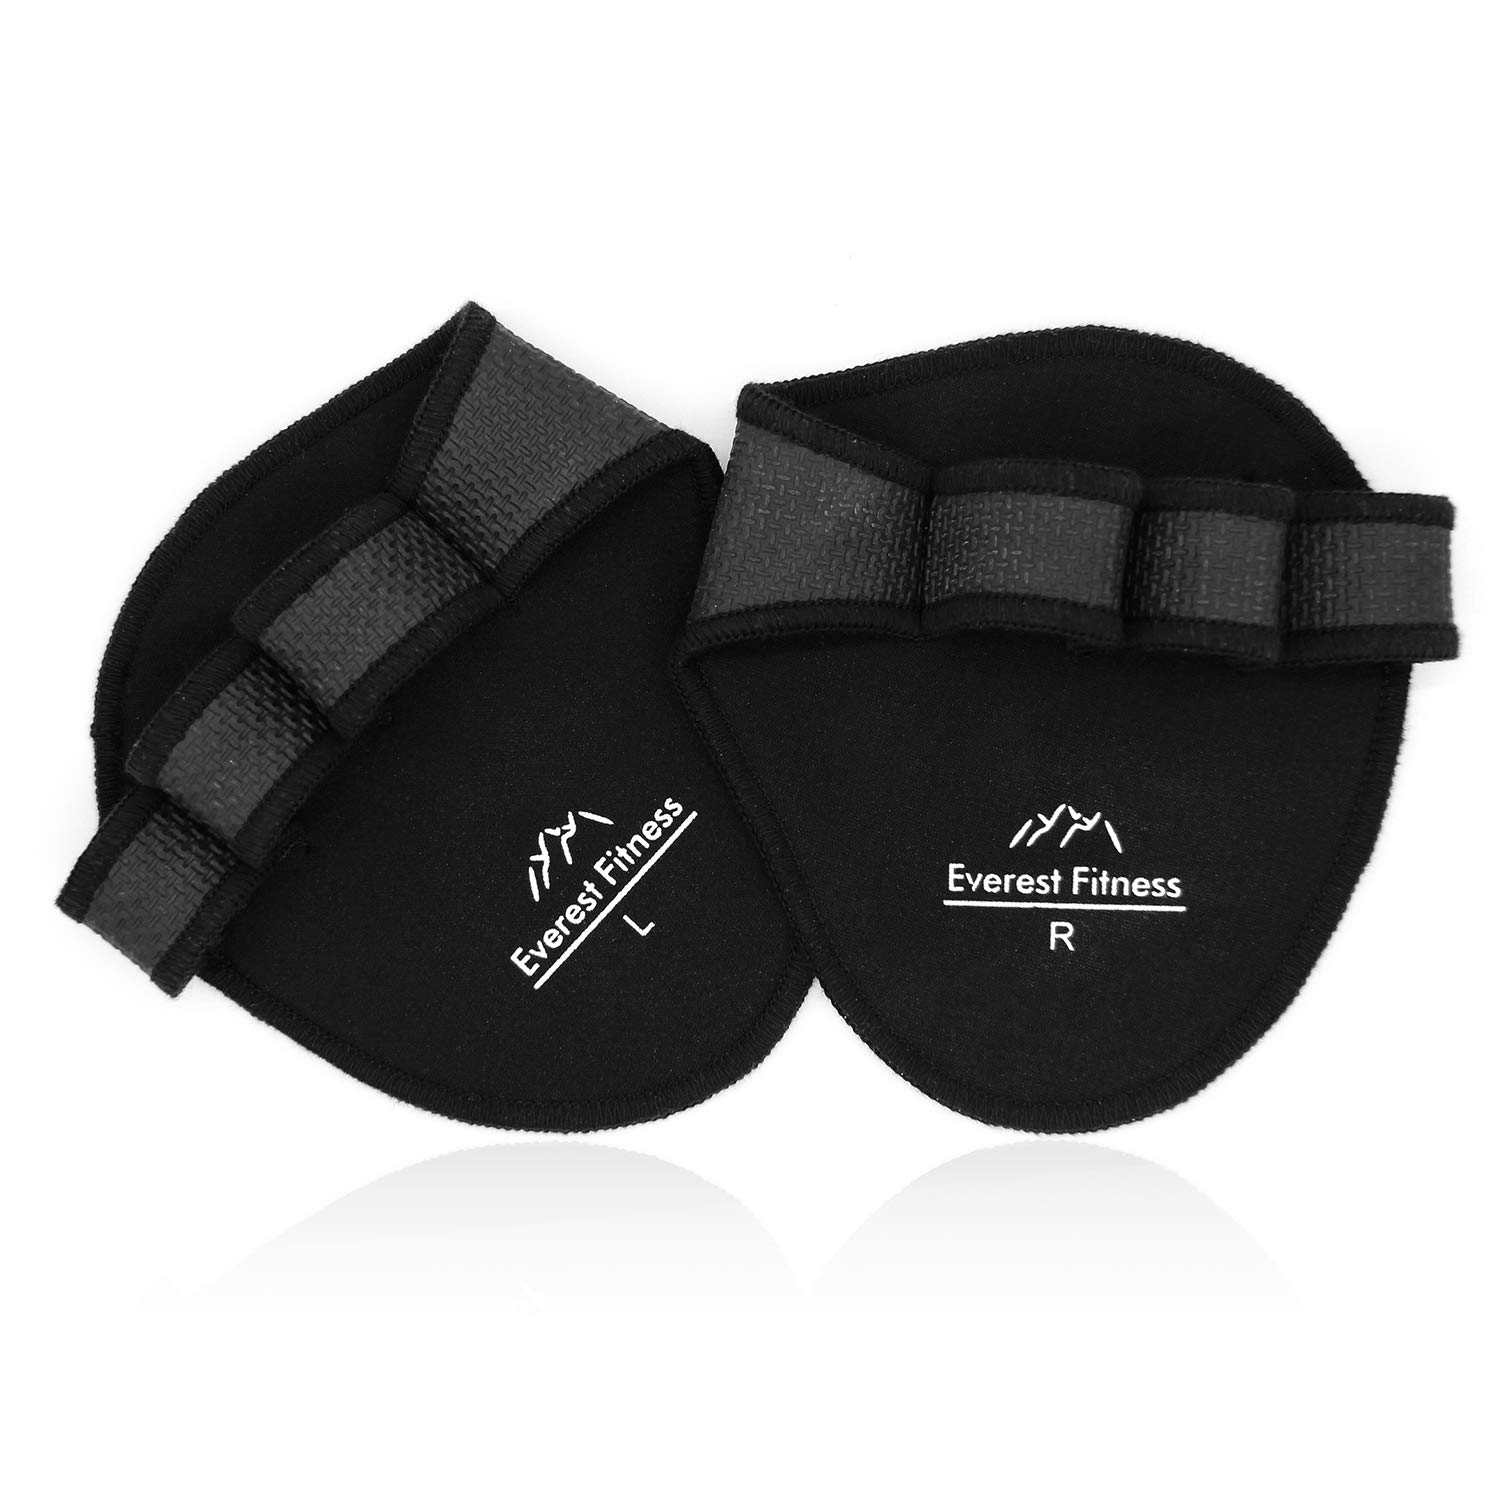 EVEREST FITNESS 1 Paar Profi-Griffpolster für Hanteltraining, Klimmzüge und Gewichtheben in schwarz | Grip-Pads, Trainingshandschuhe, Grip-Polster, Hand-Guard, Palm-Protector